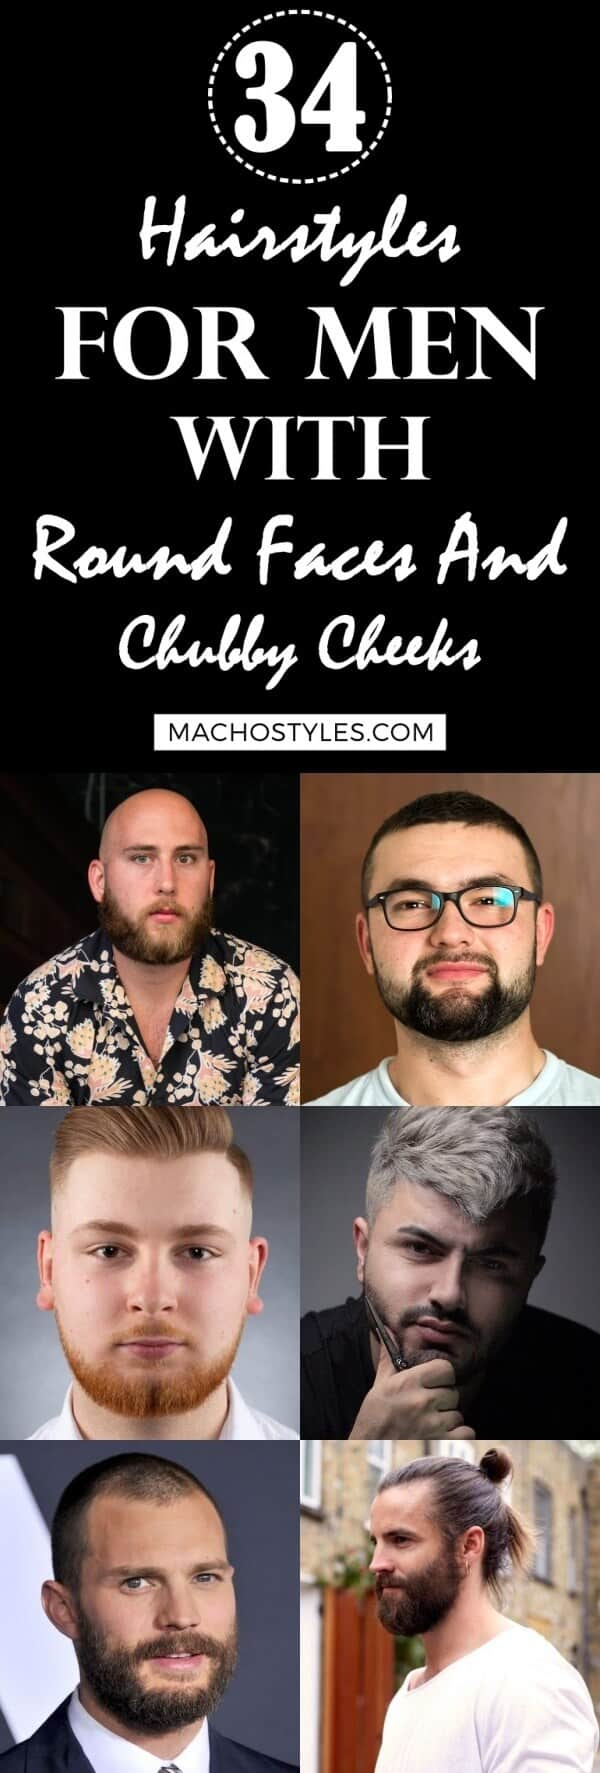 Hairstyles For Men With Round Faces And Chubby Cheeks